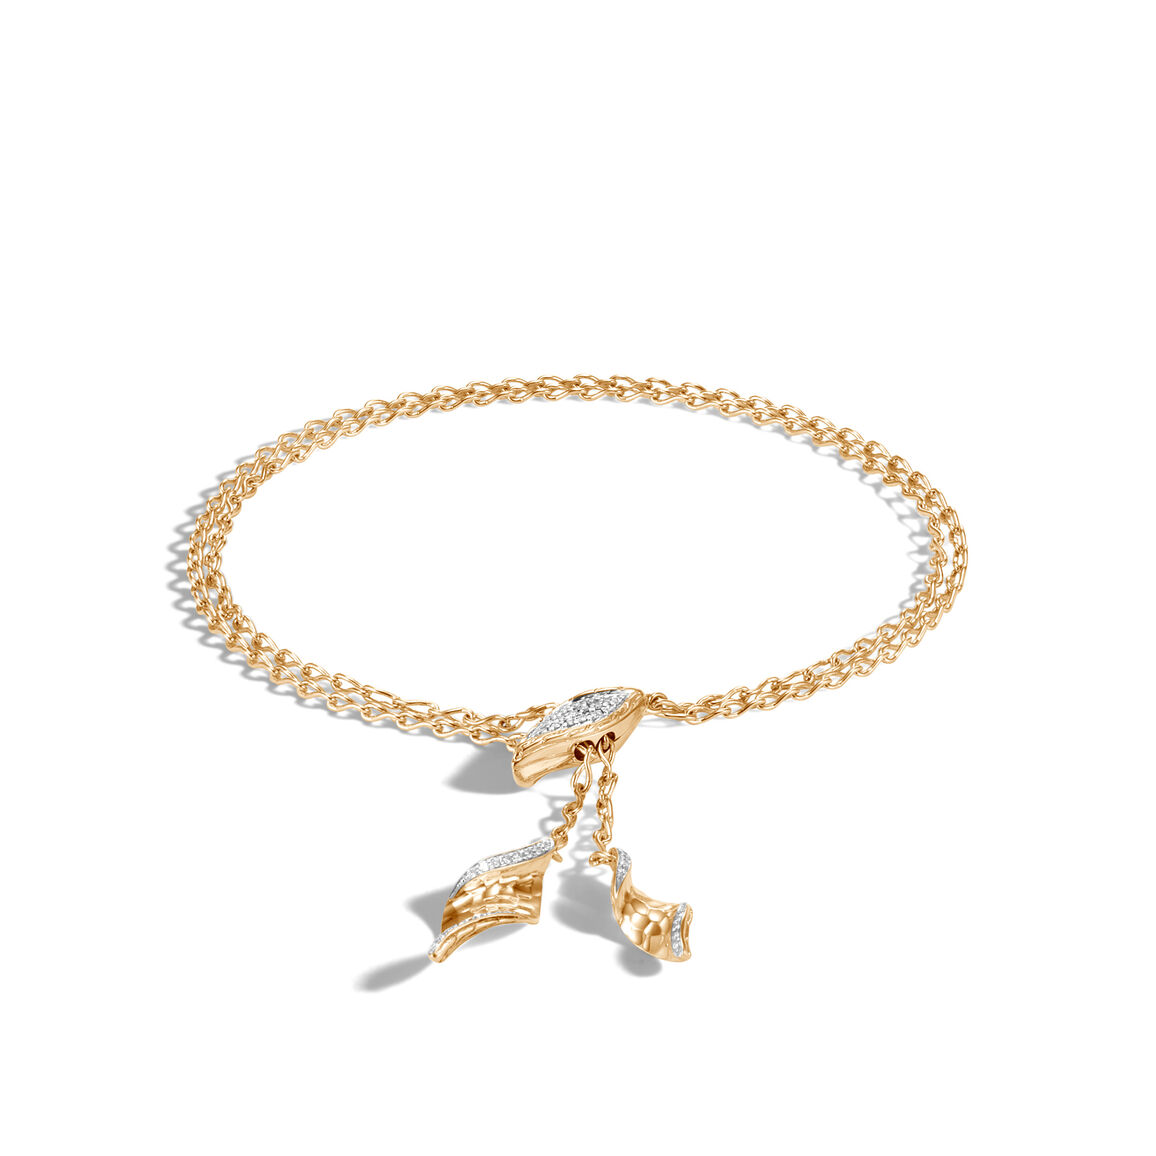 Classic Chain Wave Pull Through Bracelet, 18K Gold, Diamonds